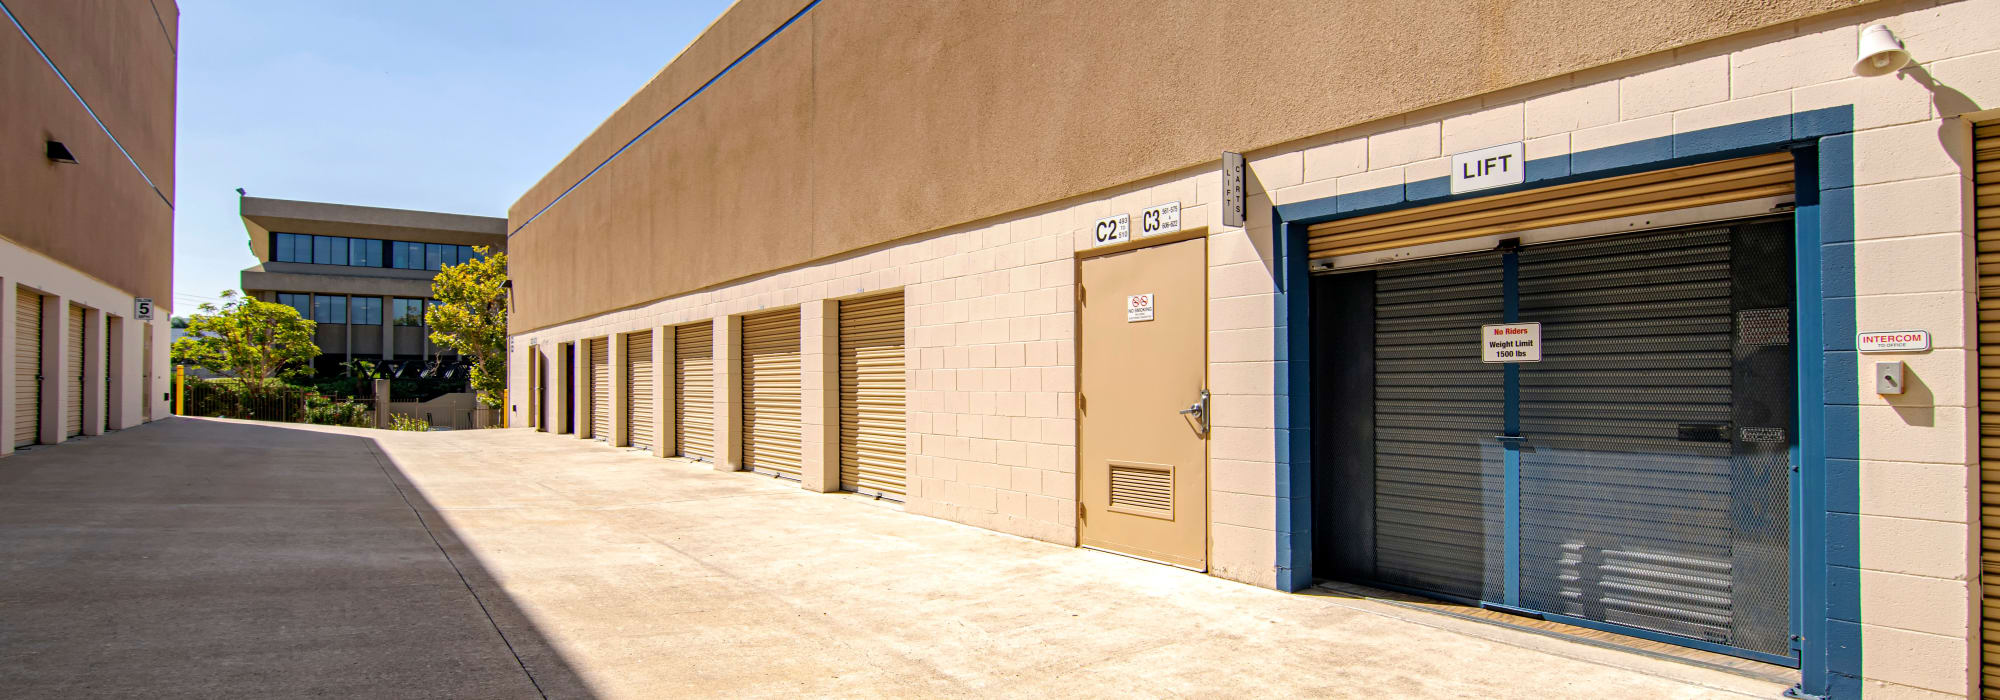 Outdoor units at Sorrento Valley Self Storage in San Diego, California